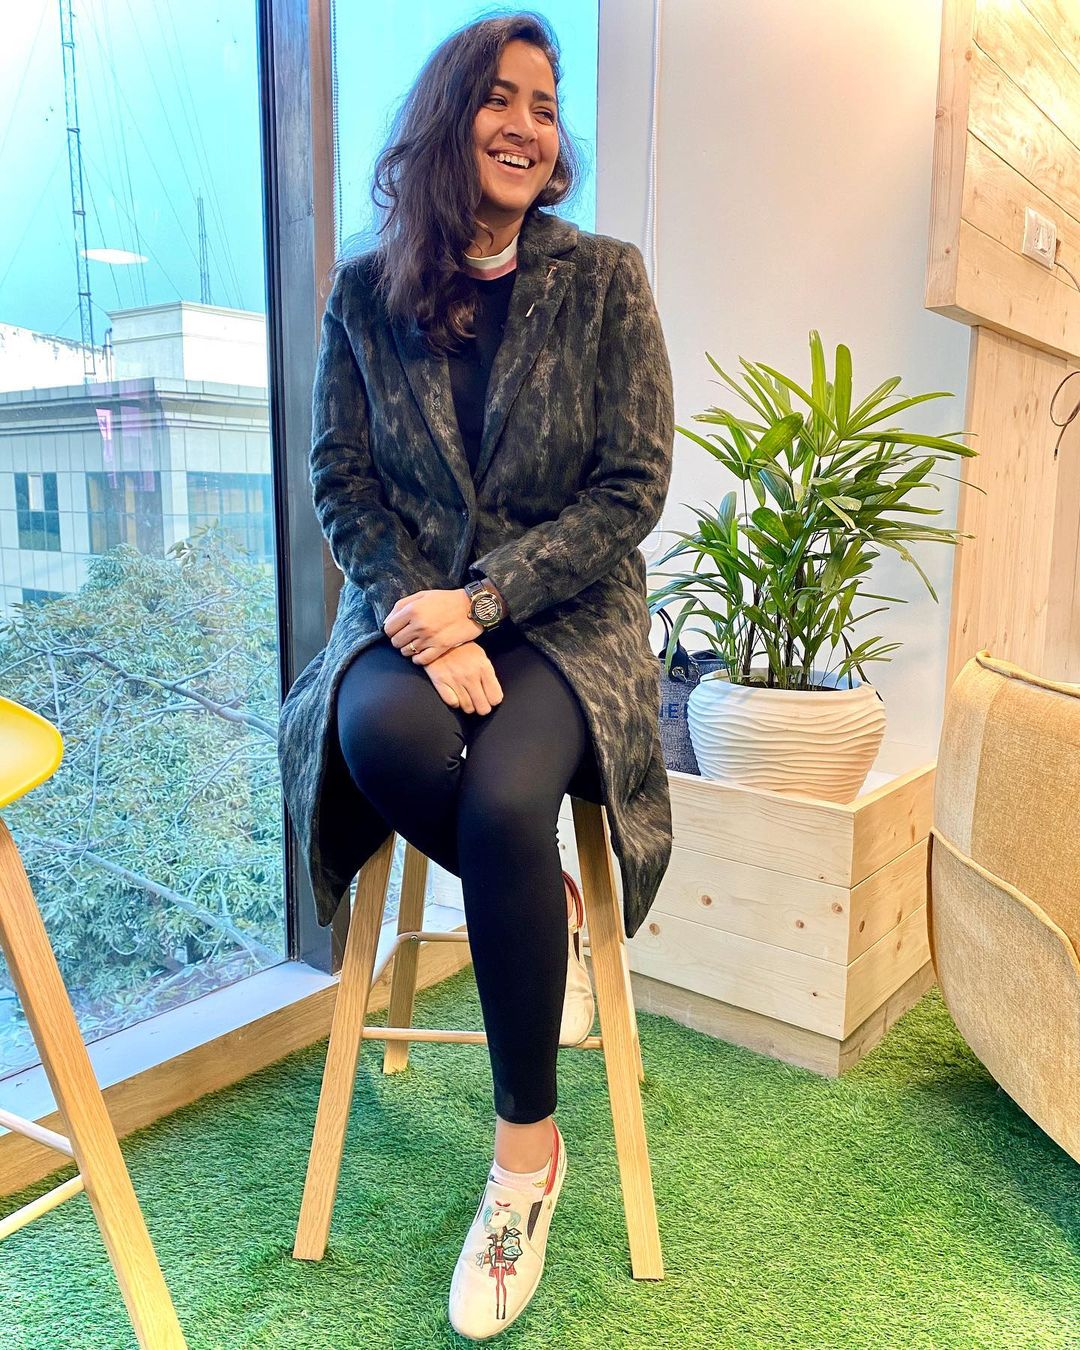 Priyanka Chaudhary Raina Husband, Profession, Net Worth, Age, Instagram, Twitter, Facebook, Children, Body Measurements, Early Life, and Parents